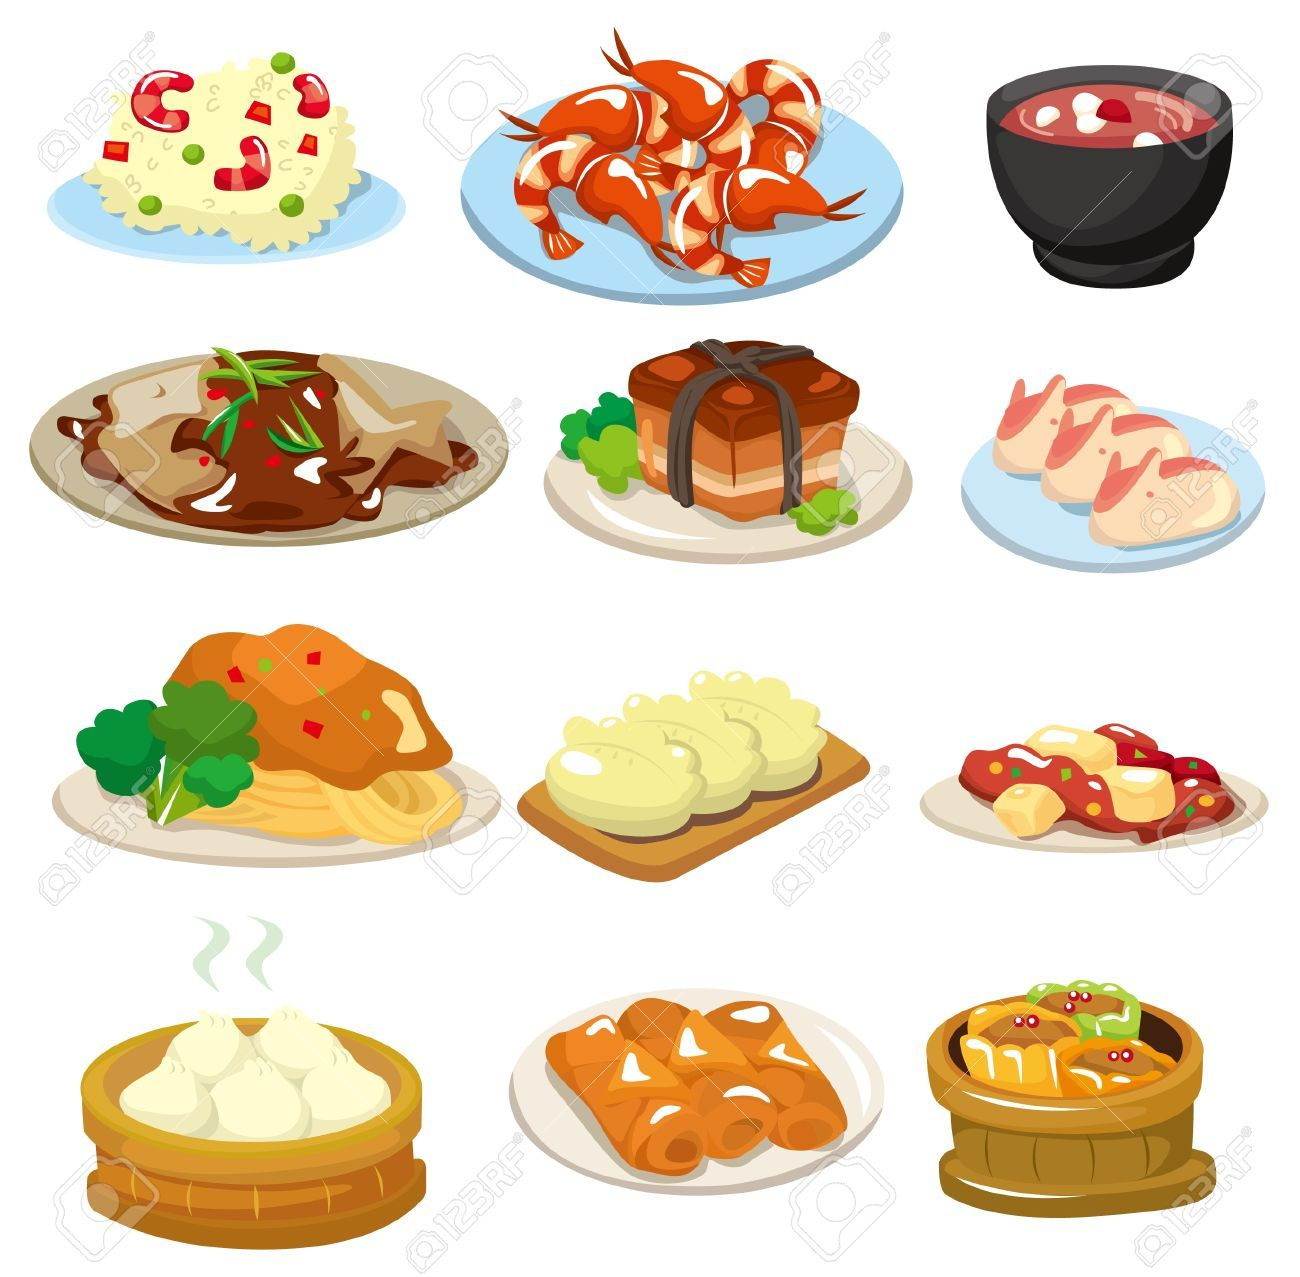 Image Result For Chinese Food Clipart